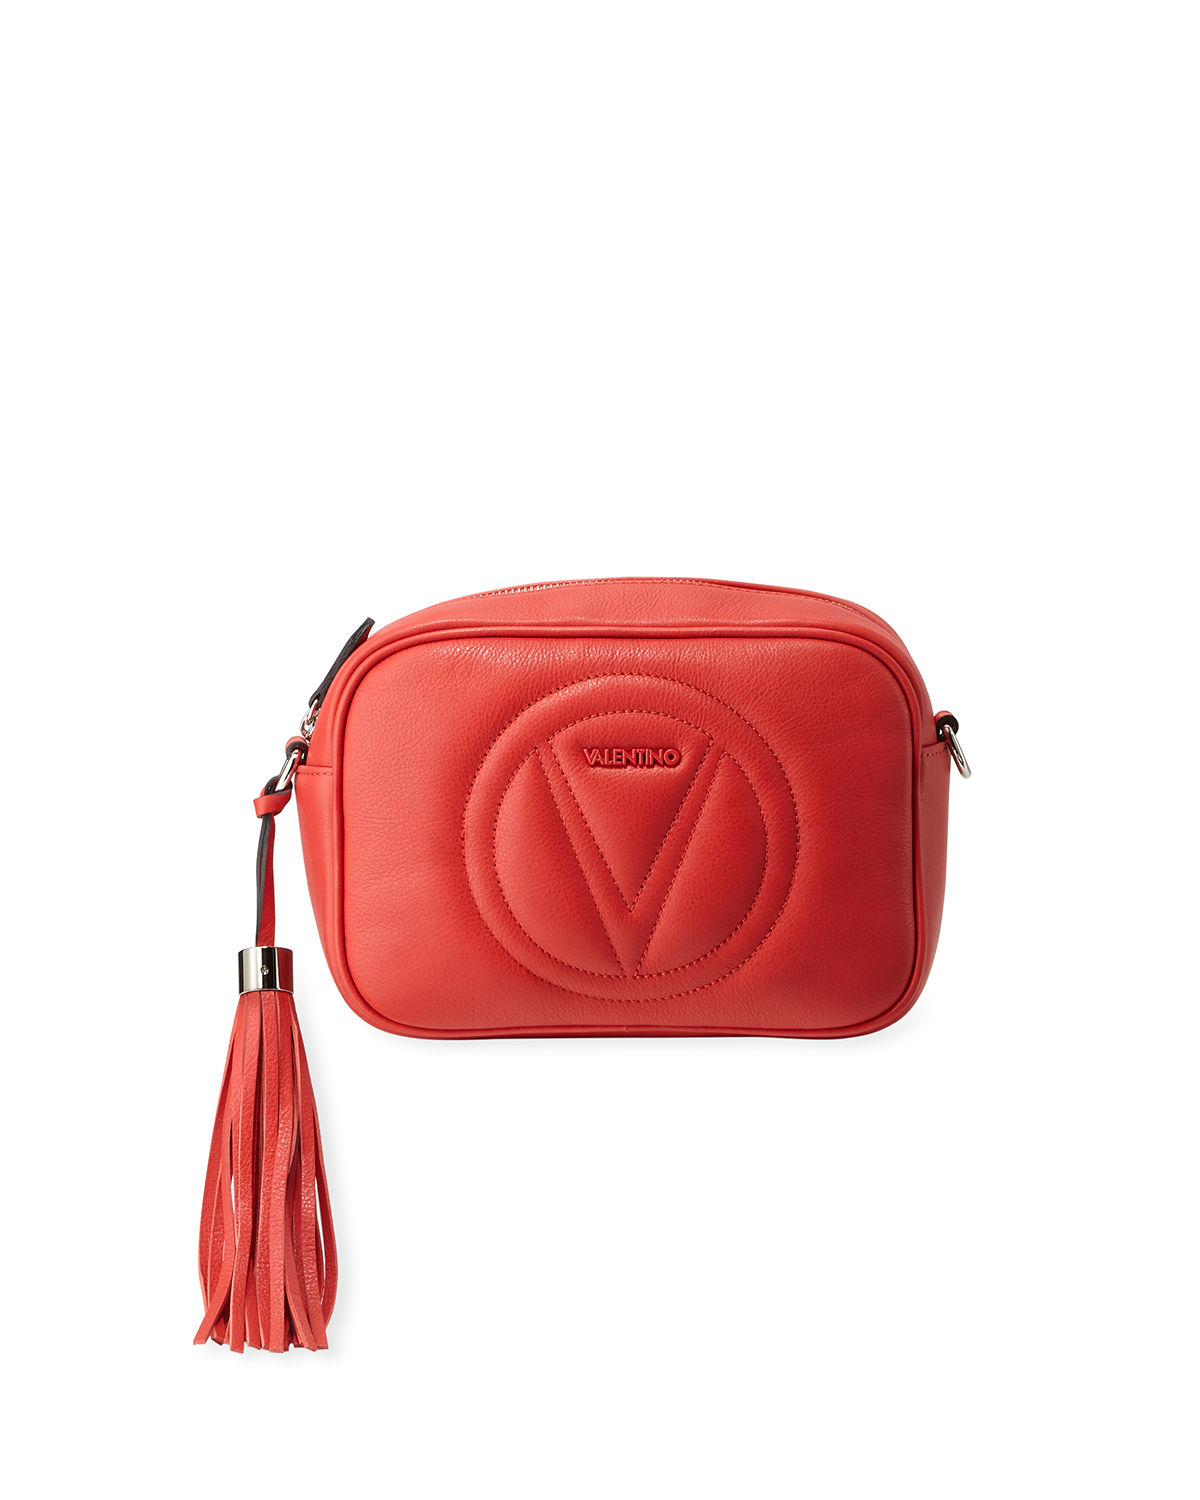 Valentino By Mario Valentino  MIA SAUVAGE LEATHER TASSEL CROSSBODY BAG